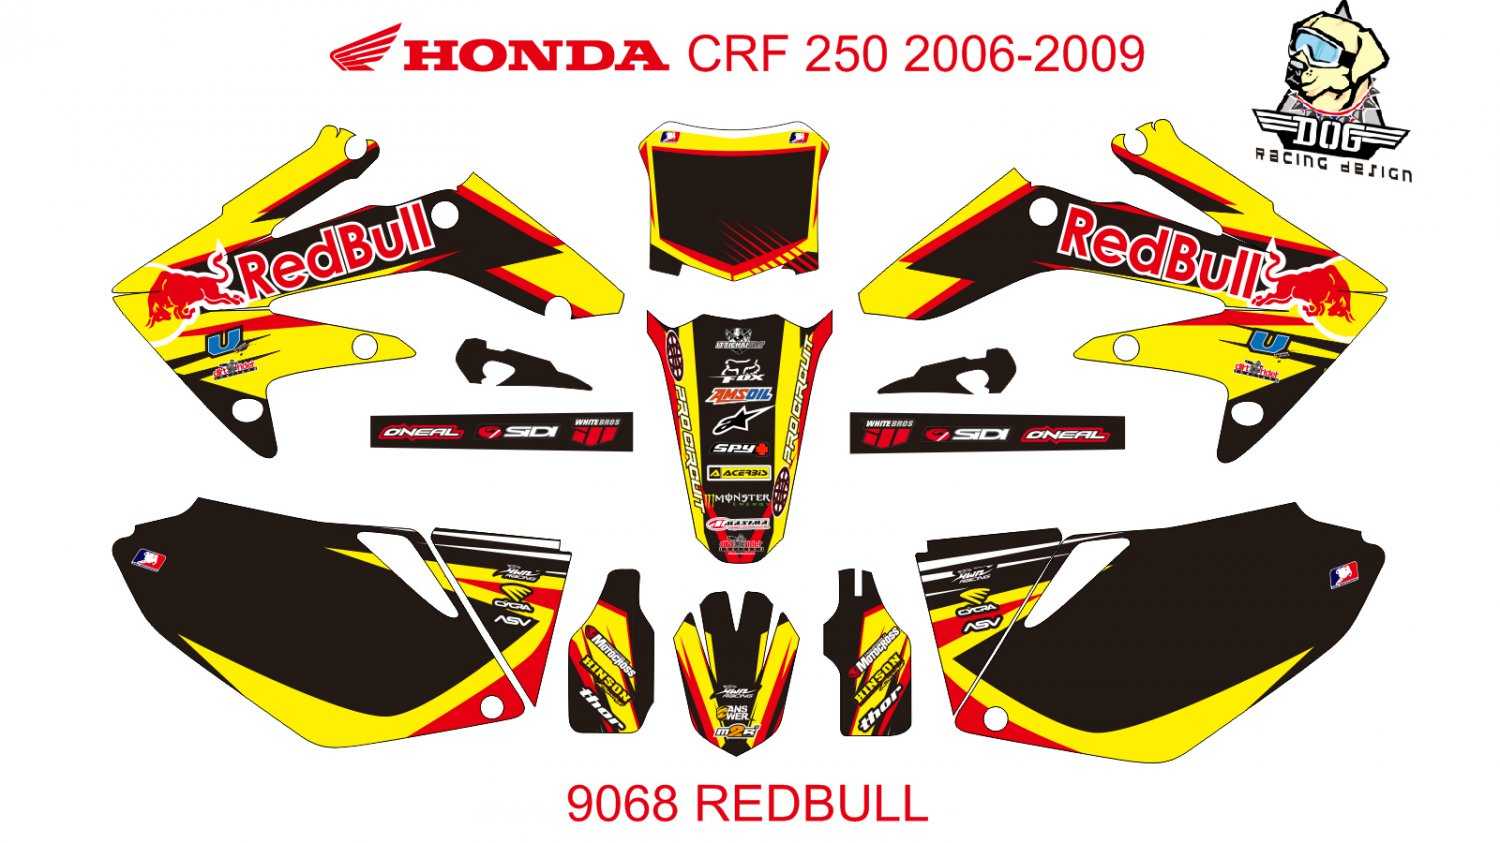 HONDA CRF 250 2006-2009 GRAPHIC DECAL KIT CODE.9068